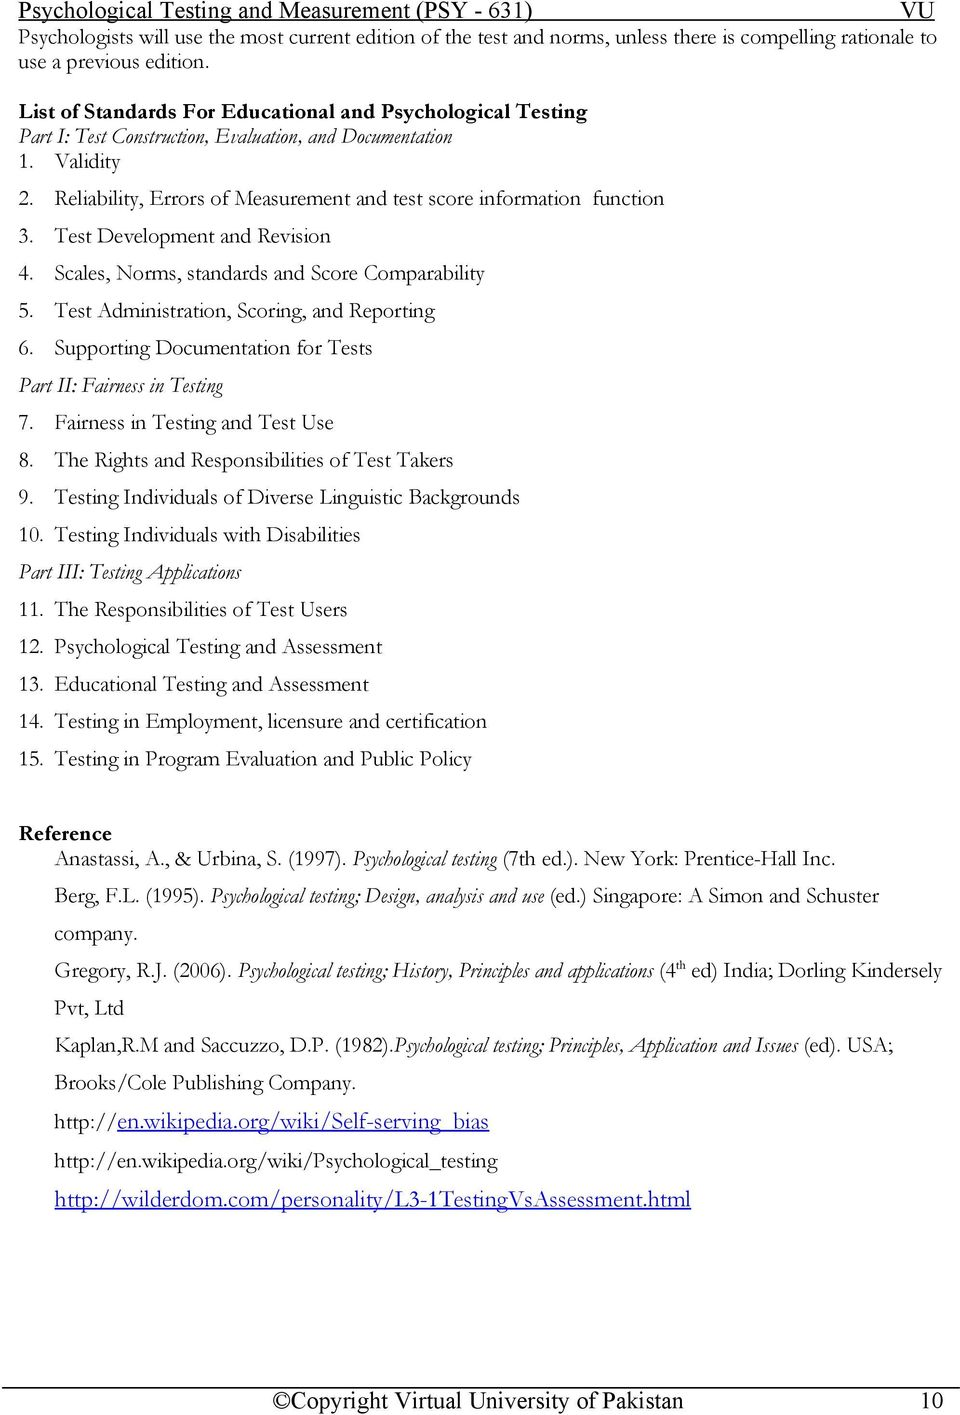 Psychological Testing and Measurement (PSY - 631) Table of